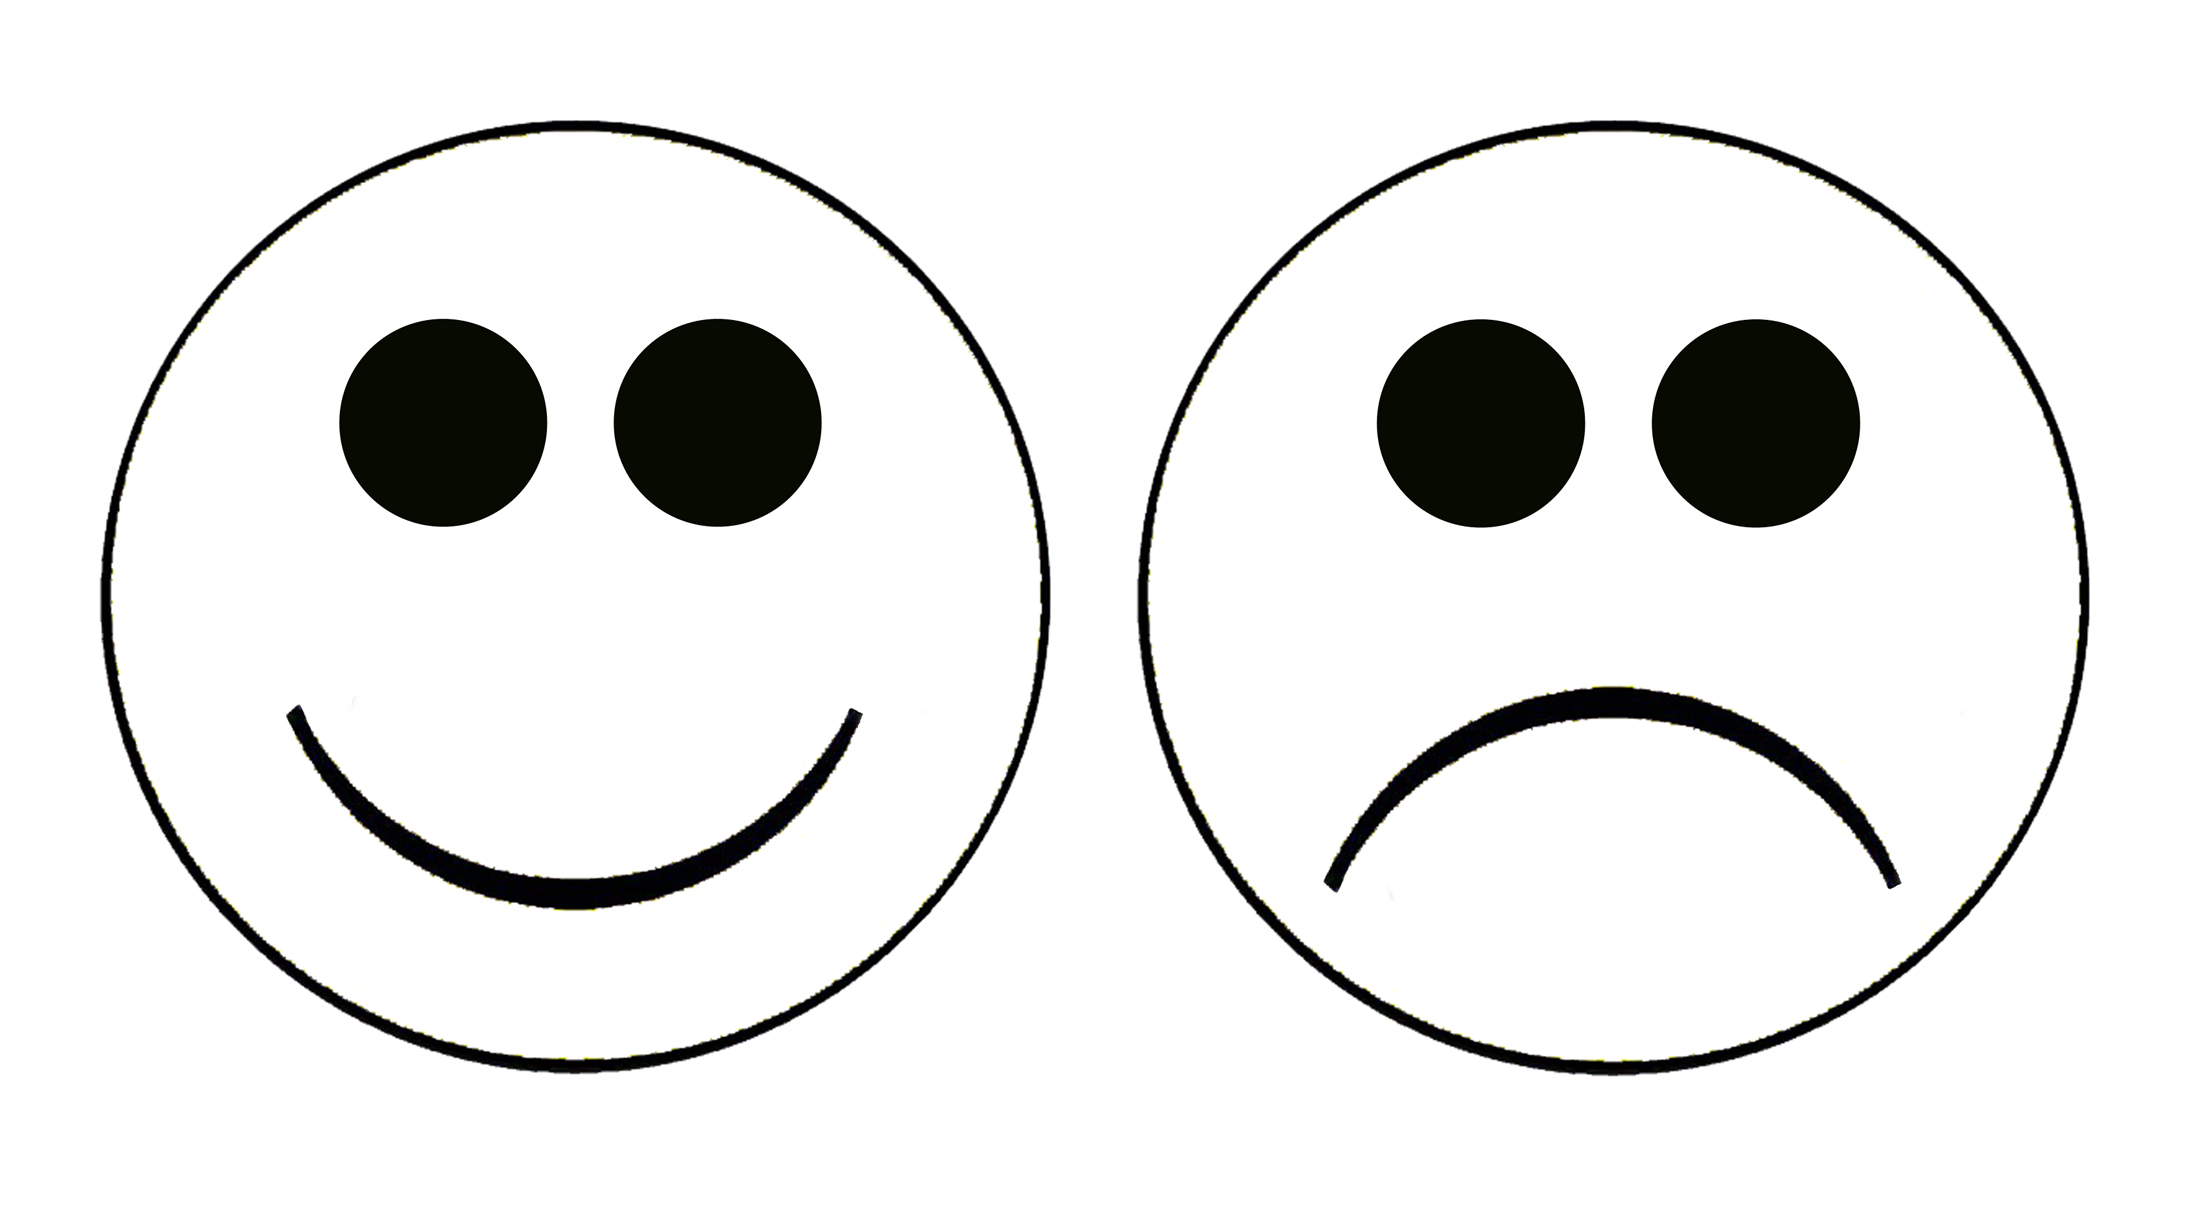 Smile clipart happy face symbol #8